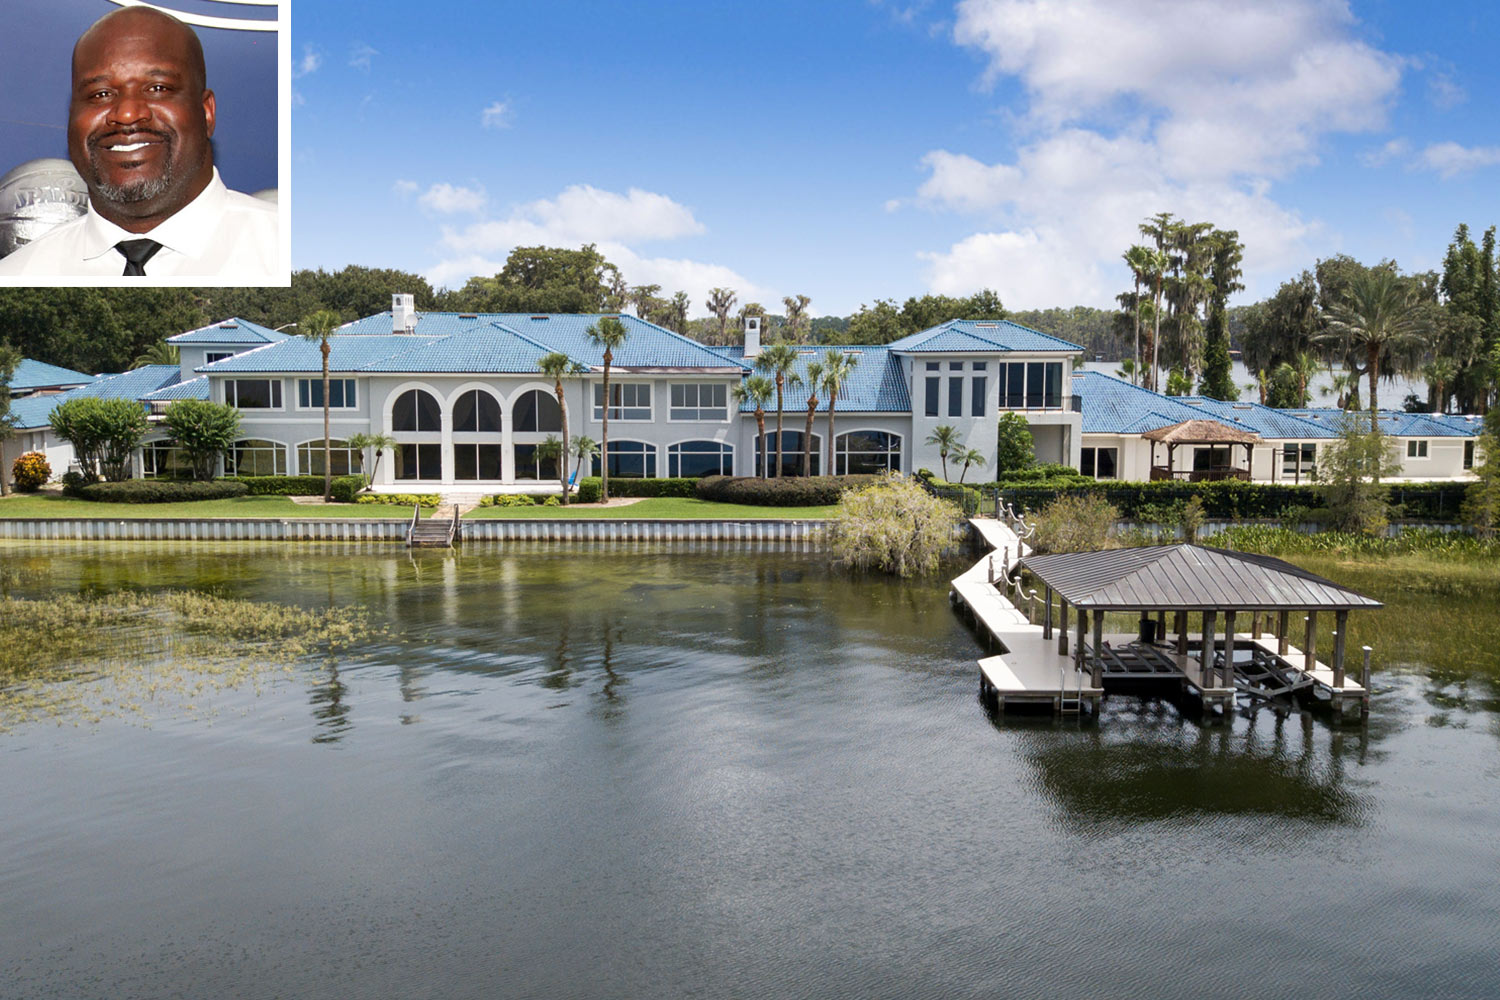 Shaq Selling Florida Home